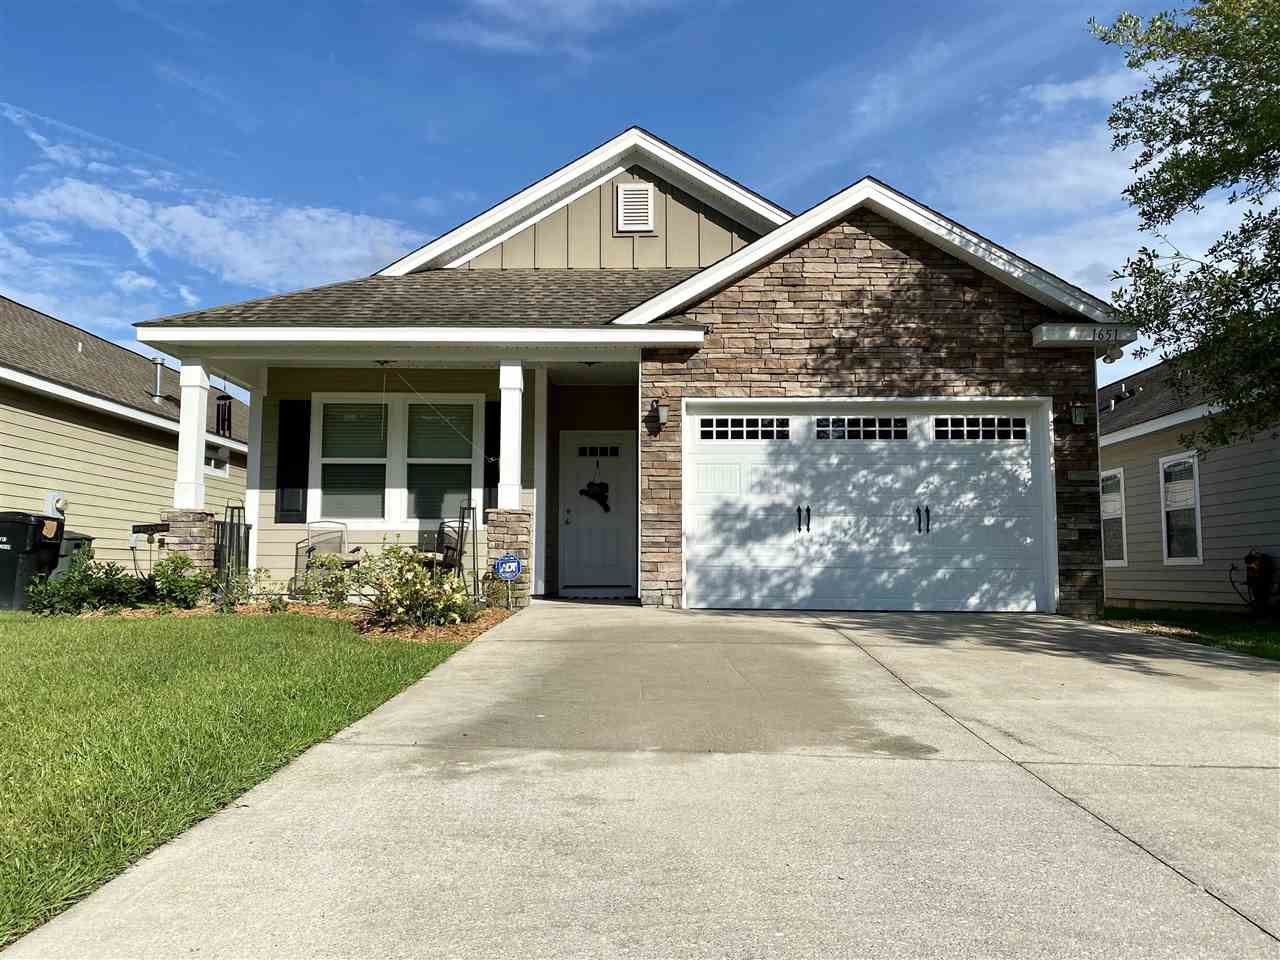 Photo of 1651 SUMMER MEADOW PLACE, TALLAHASSEE, FL 32308 (MLS # 332131)